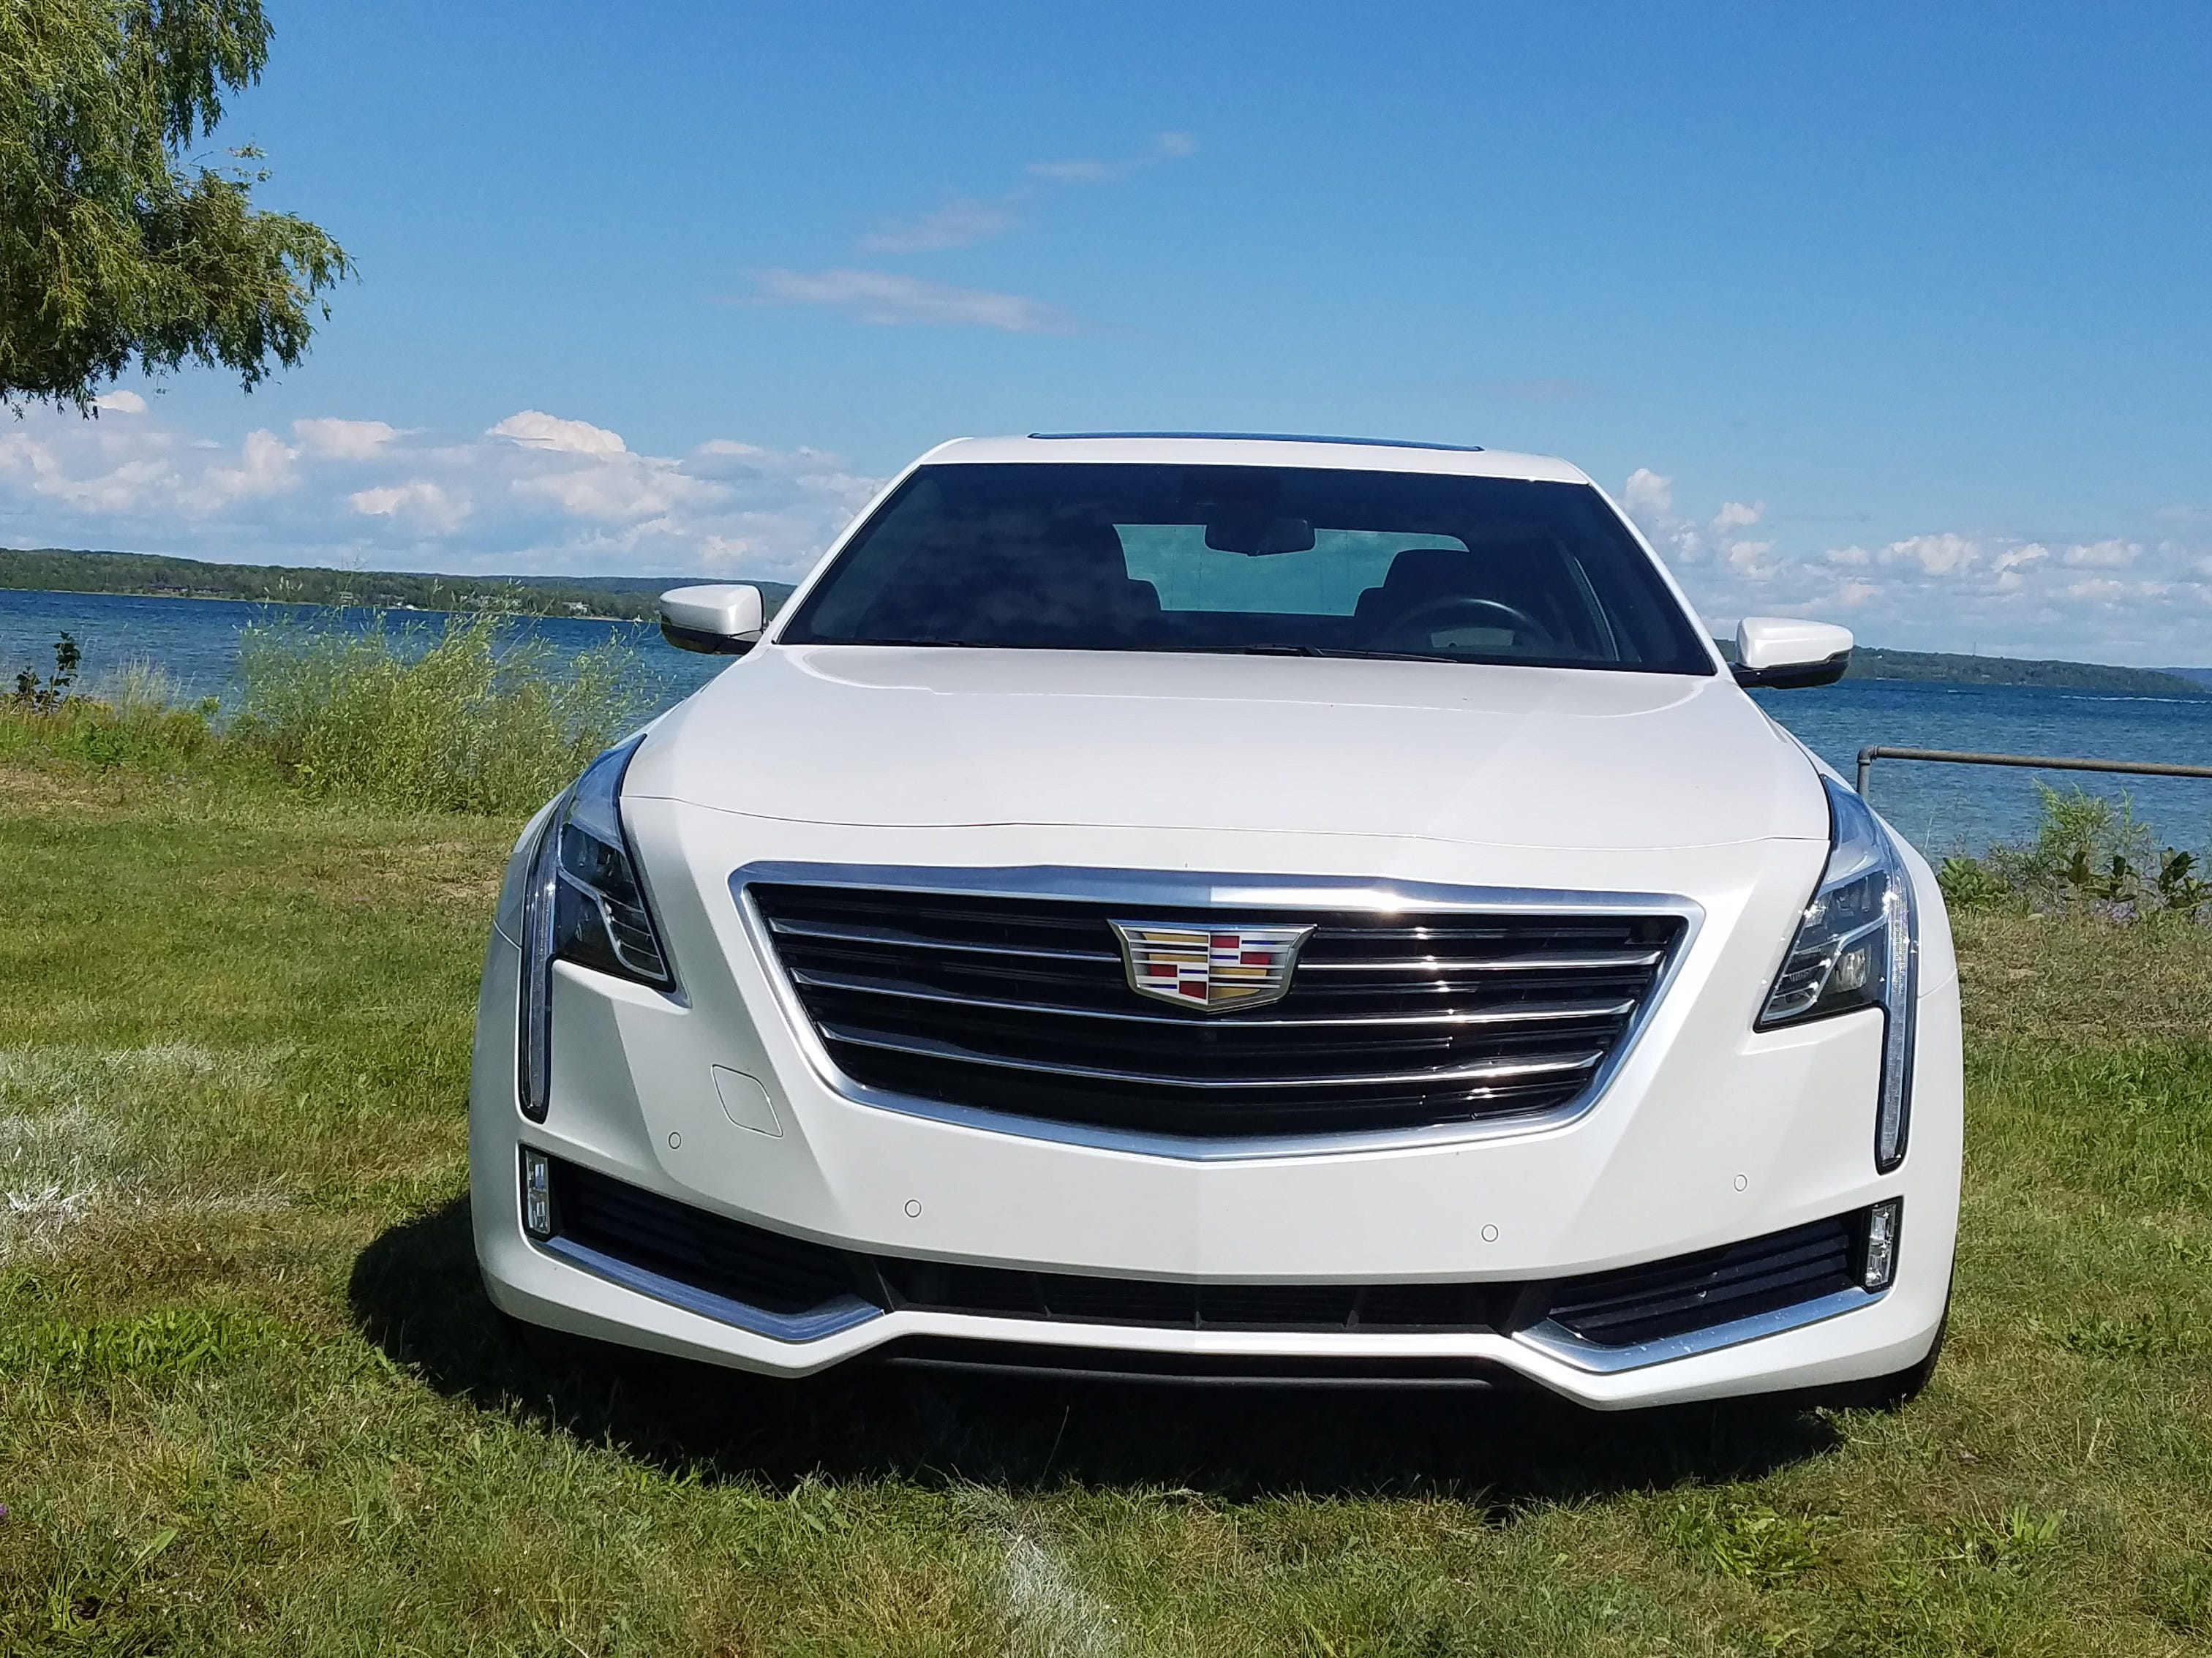 The 2017 Cadillac CT6 Plug-in's face is nicely sculpted with signature, Pentagon grille and LEF headlights pushed to the corners.